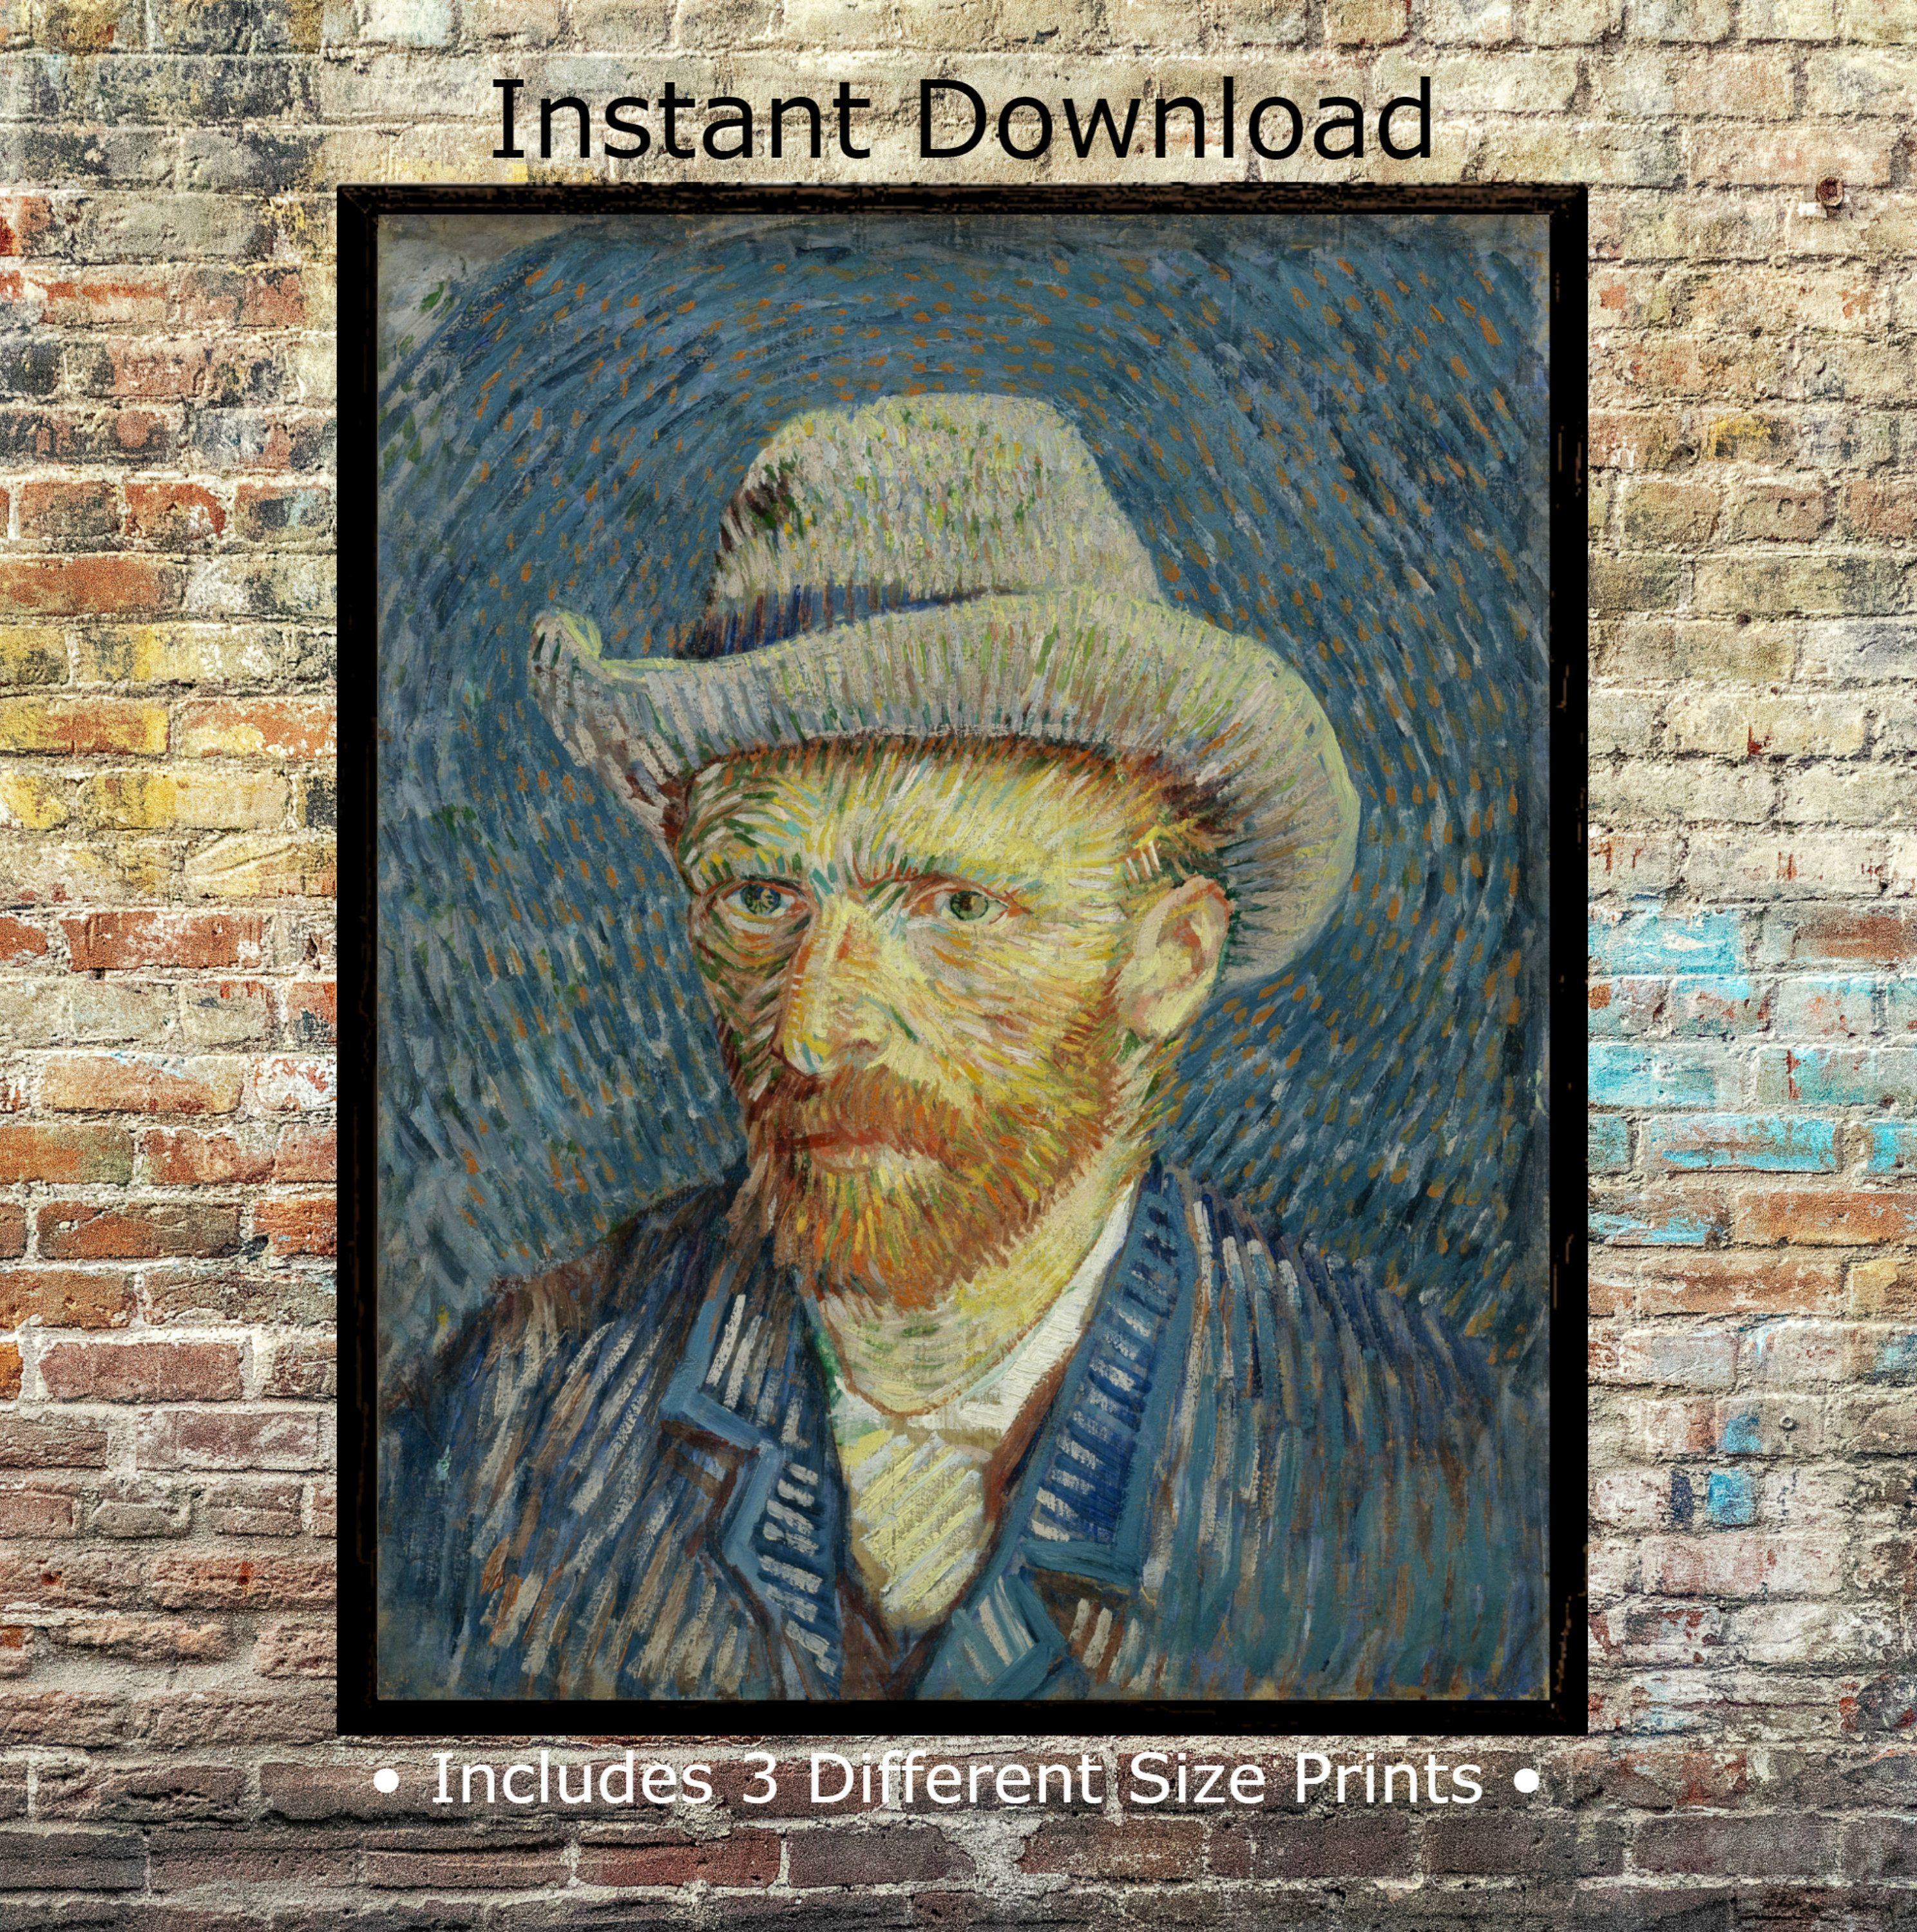 Vincent Van Gogh S Self Portrait Digital Art Prints